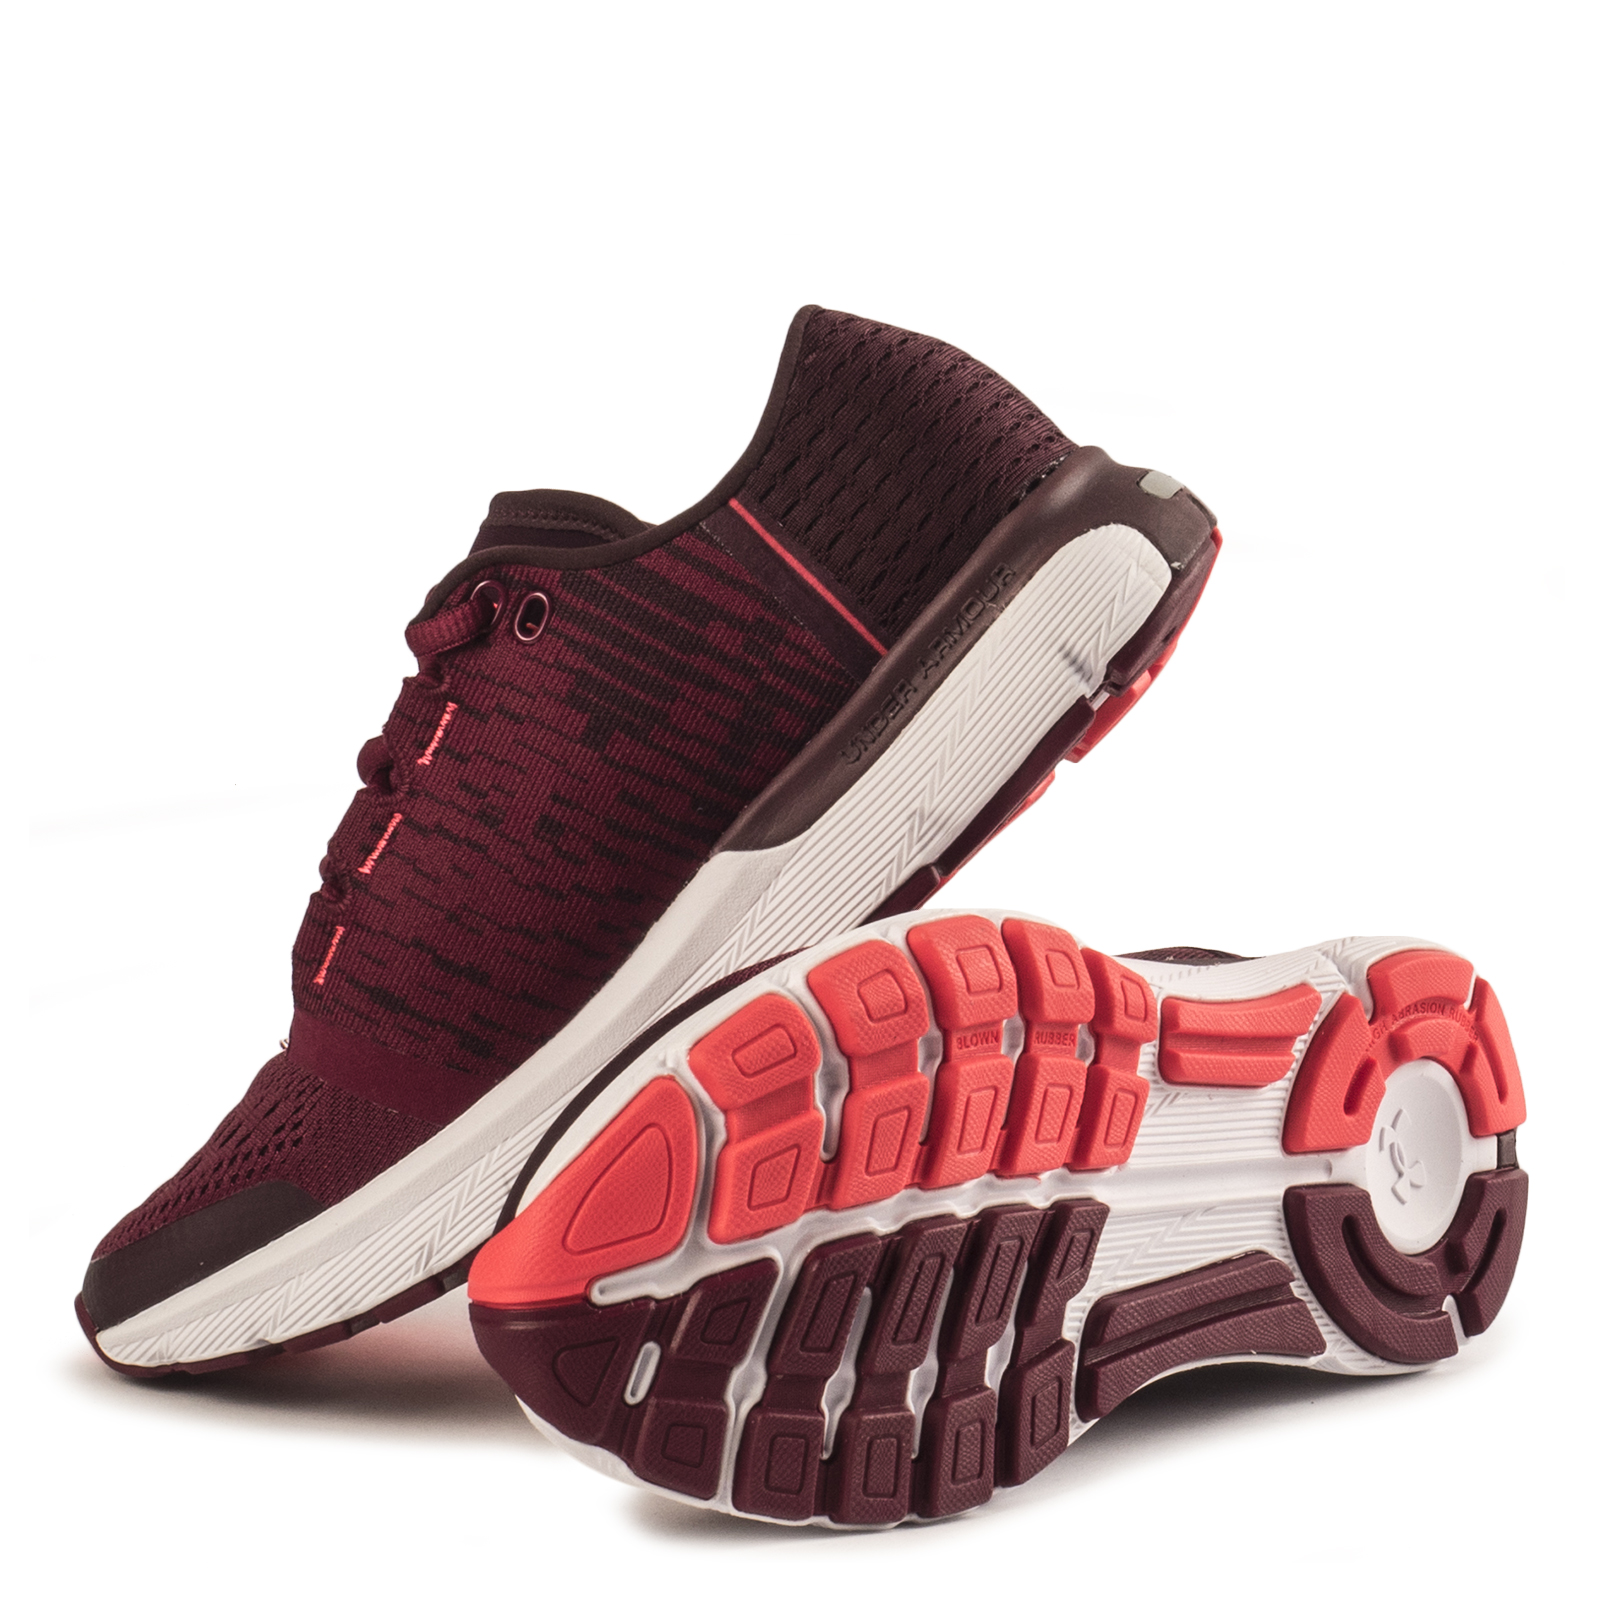 available from 10.11 Under Armour running shoes women 1298662-500 onemix new style women rome shoes beach sandal extrasensory gladiator set woman roman multifunction running shoe slipper jogging